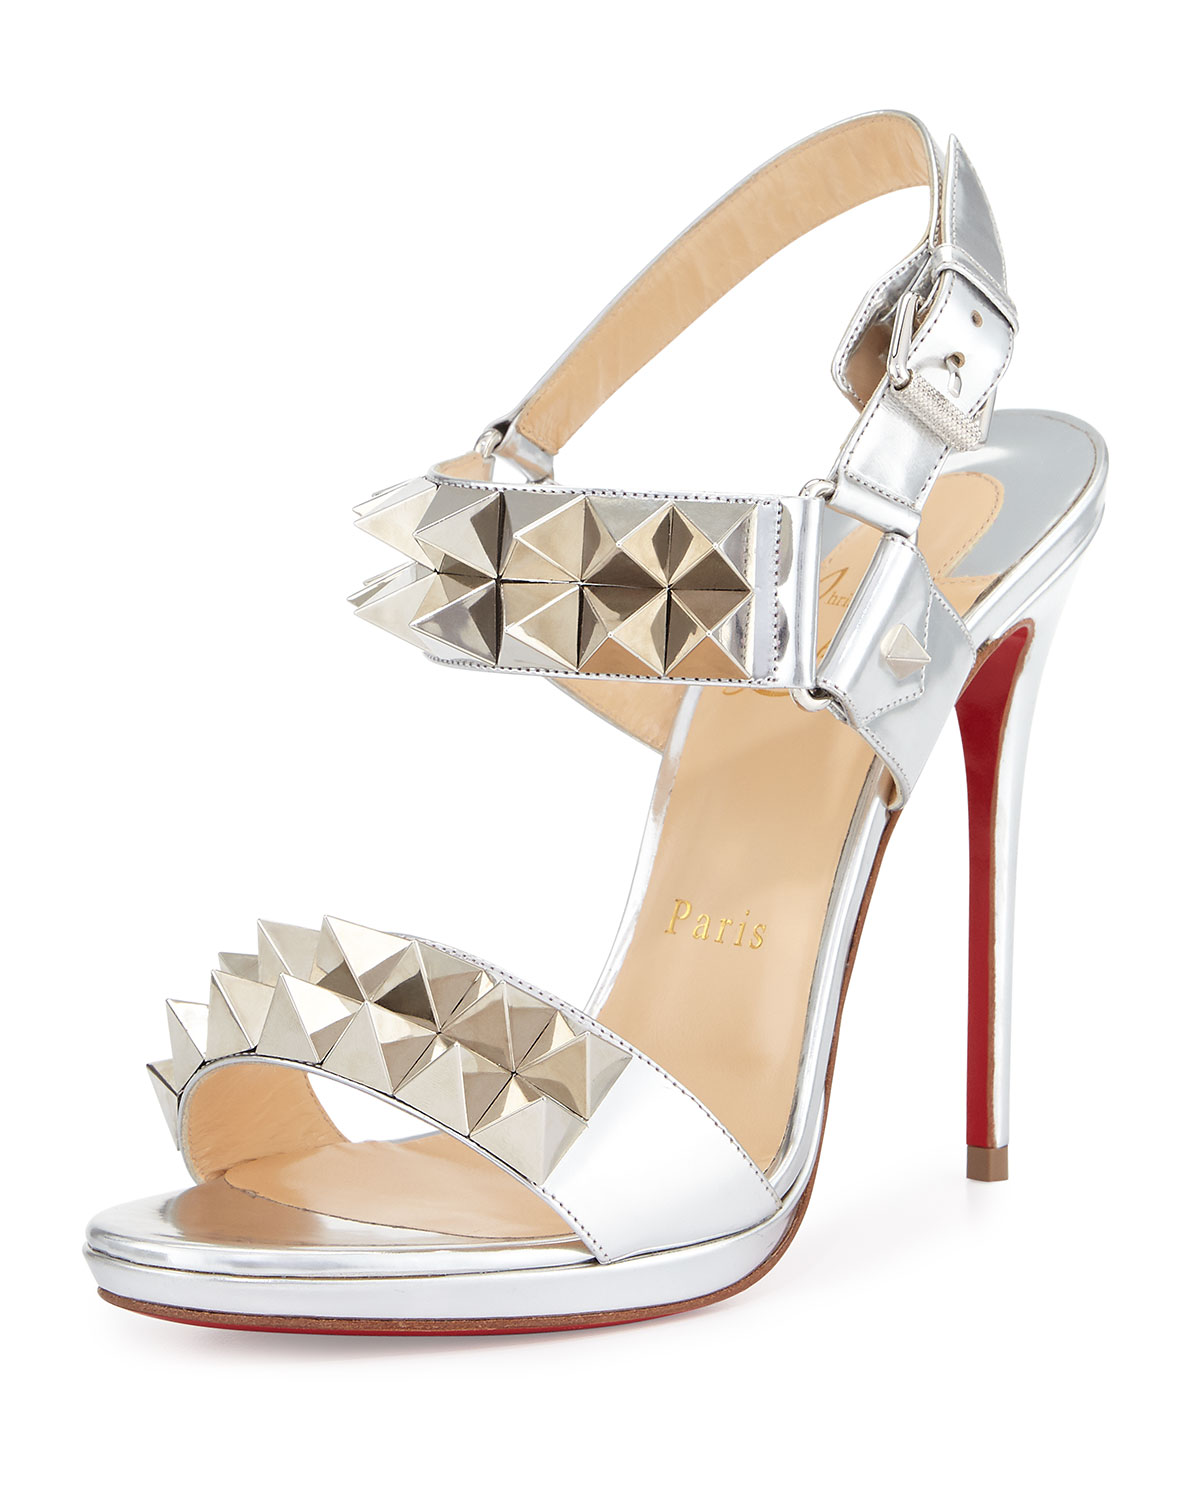 3143730388b Miziggoo Spiked Two-Band Red Sole Sandal, Silver